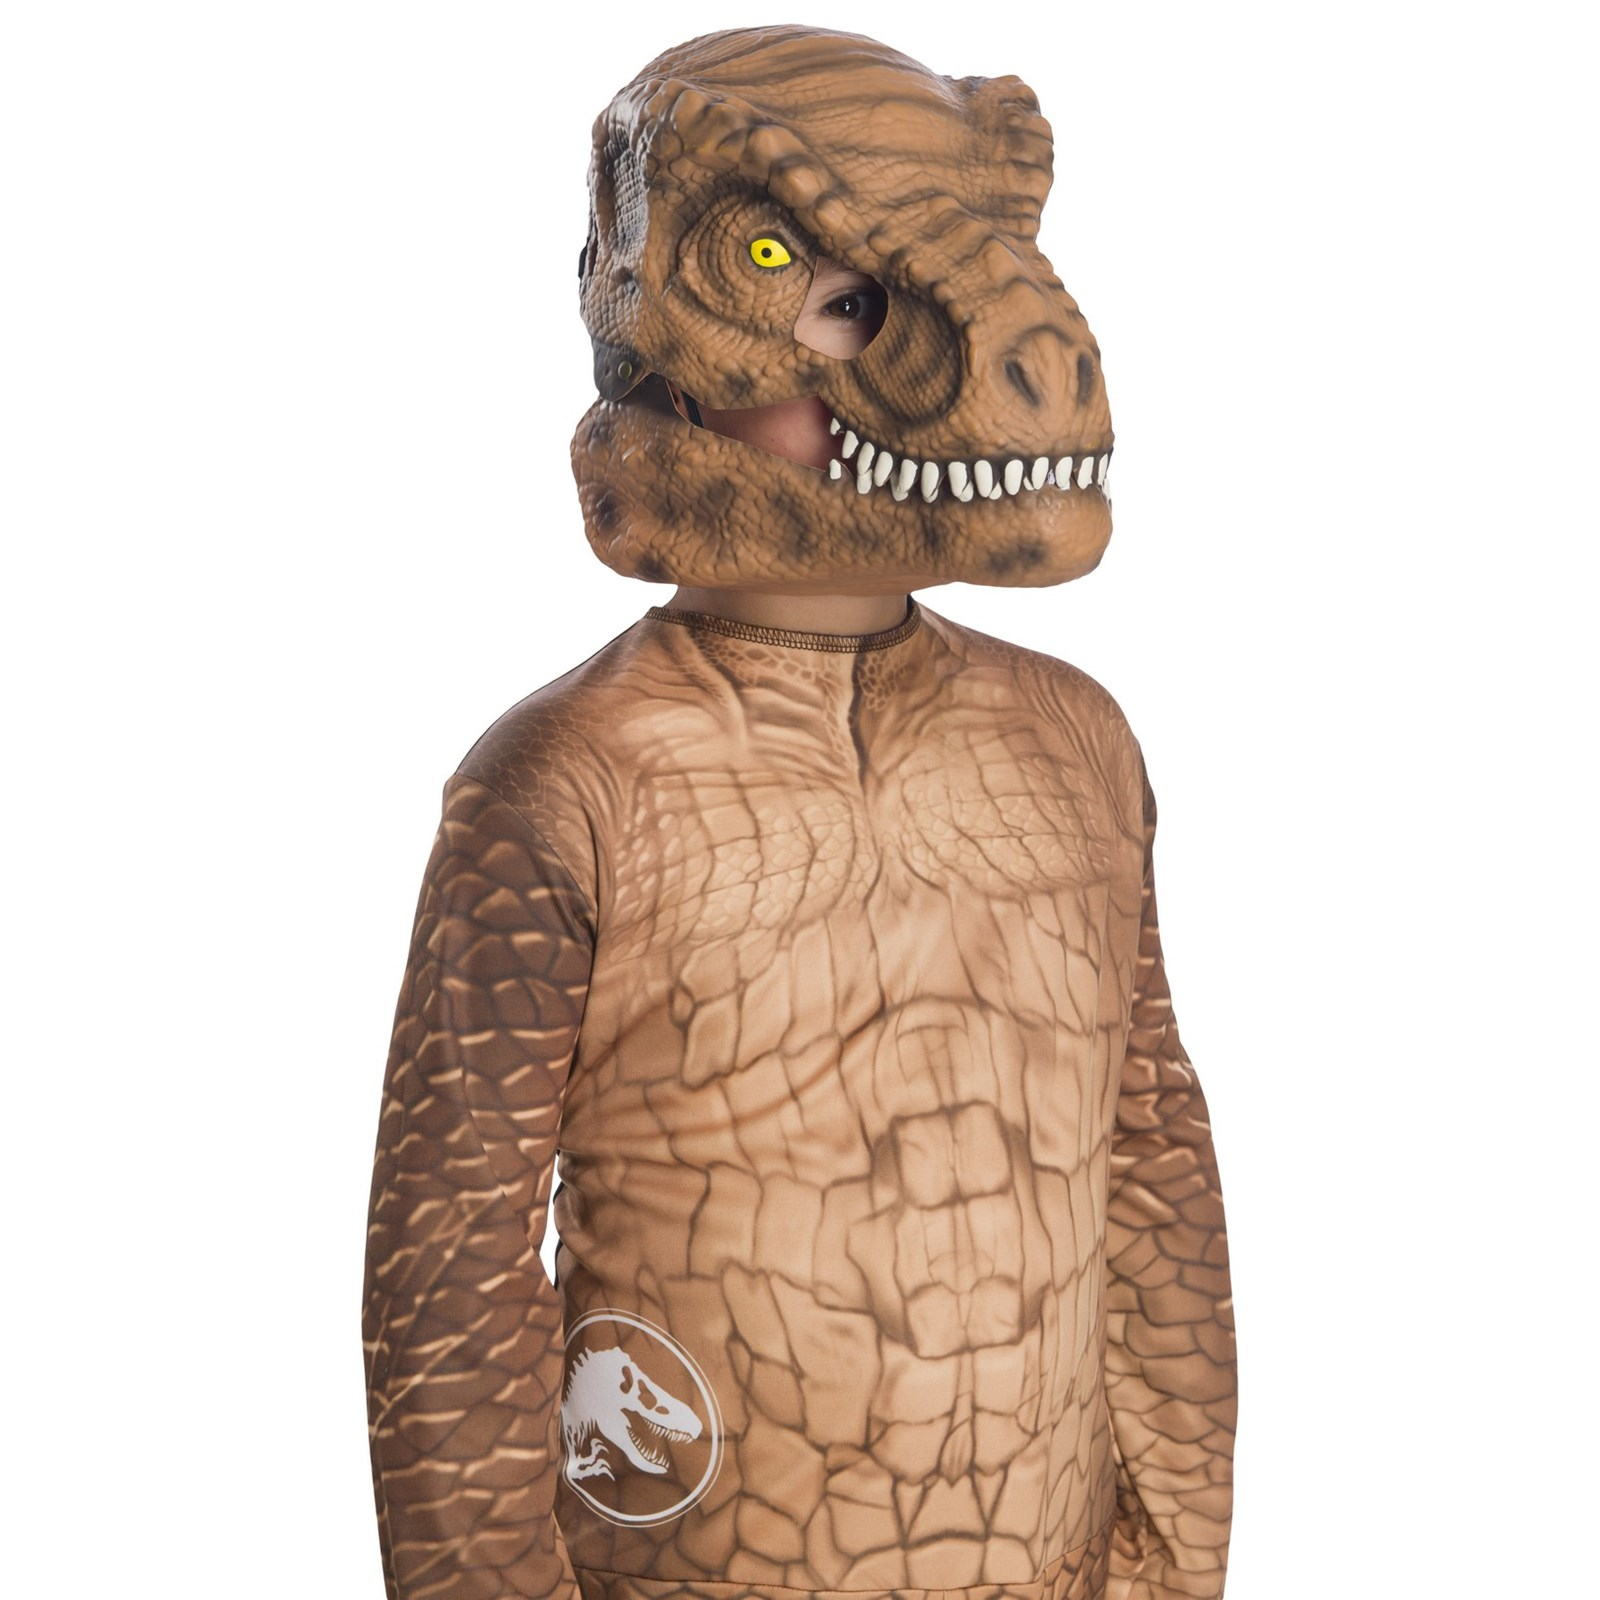 Jurassic World: Fallen Kingdom Tyrannosaurus Rex Movable Jaw Child Mask Halloween Costume Accessory